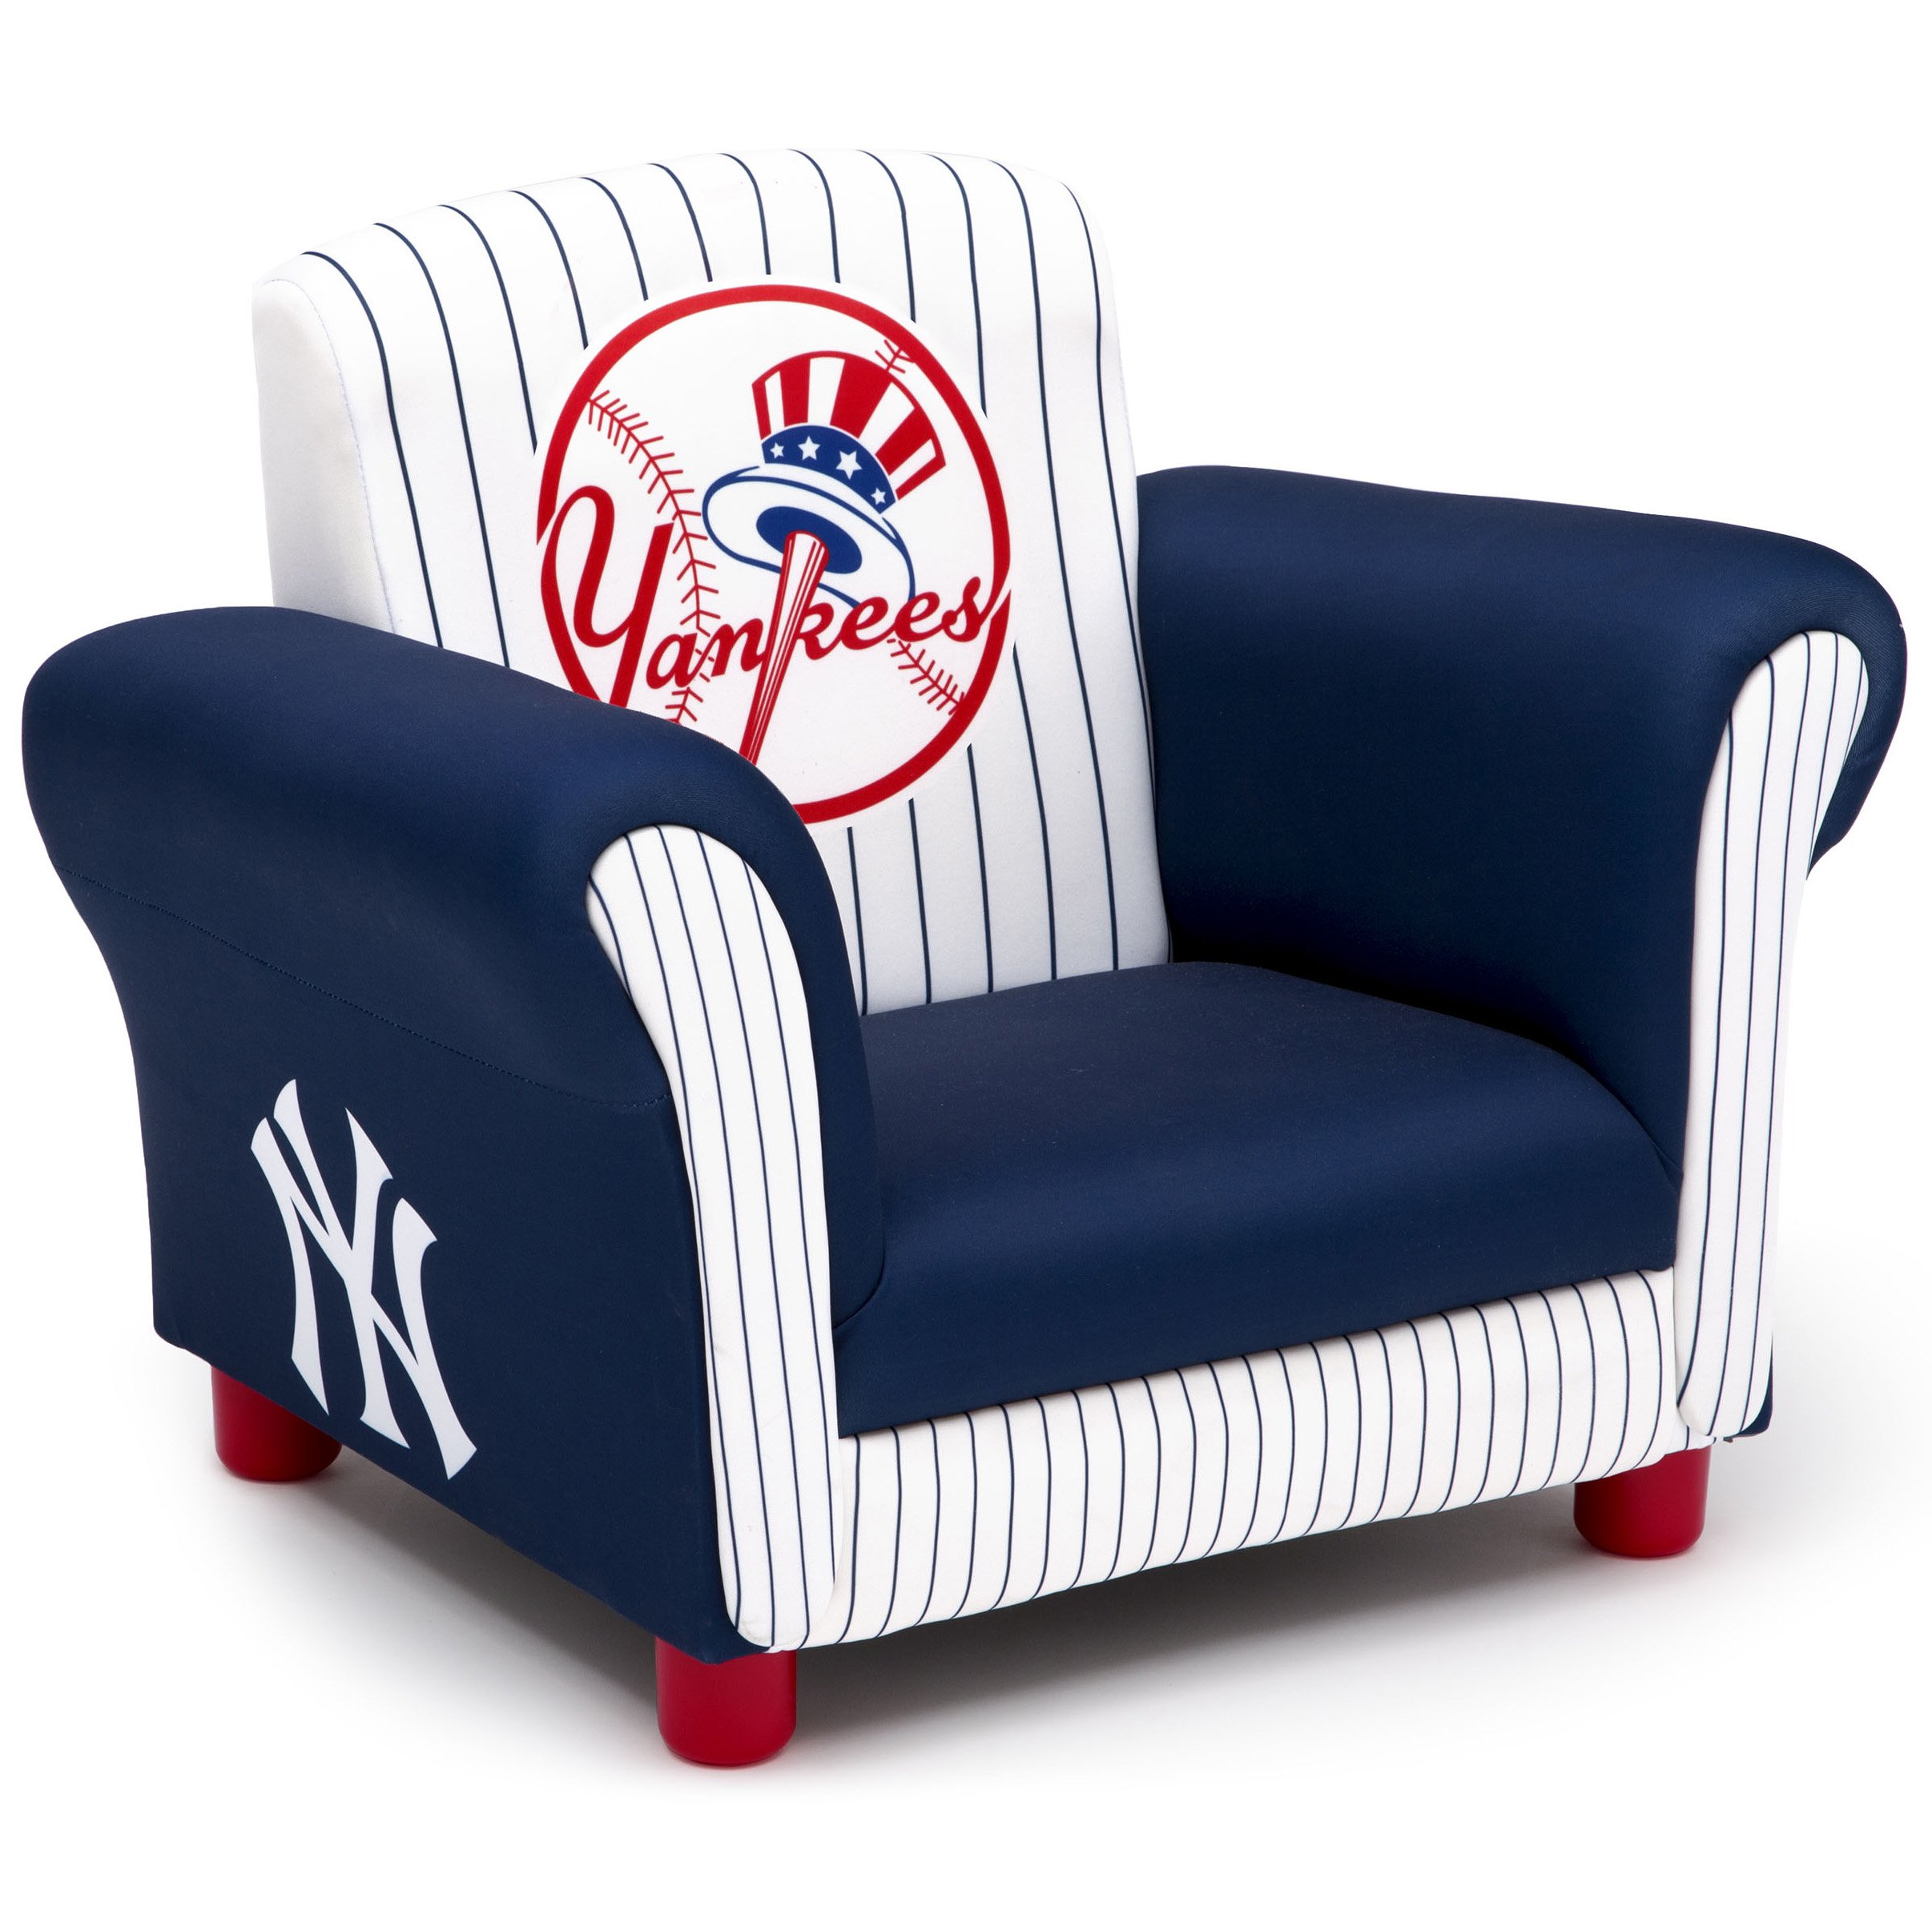 Gentil New York Yankees Kids Upholstered Chair